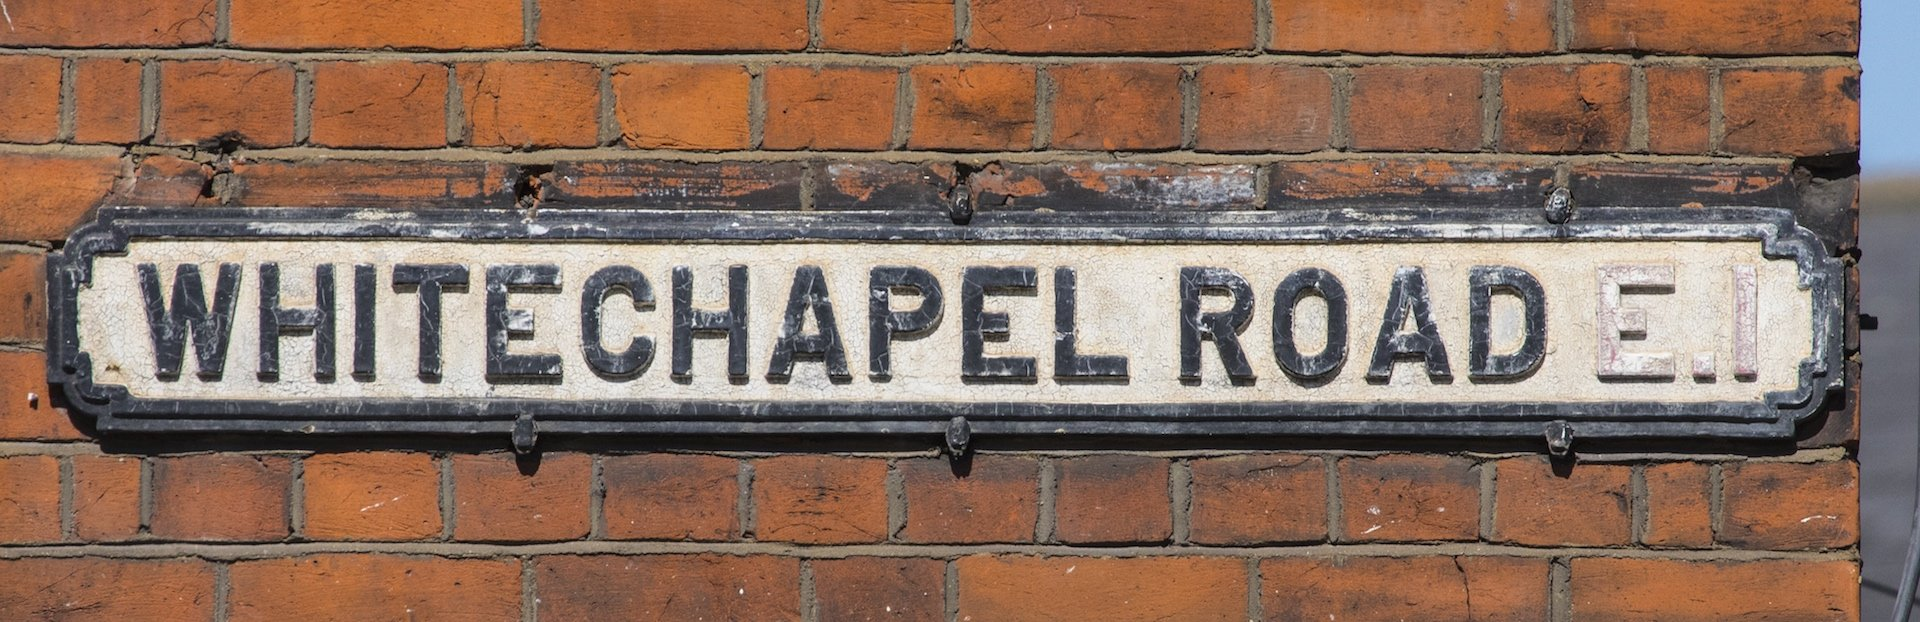 London audio tour: Art and Murder in Whitechapel